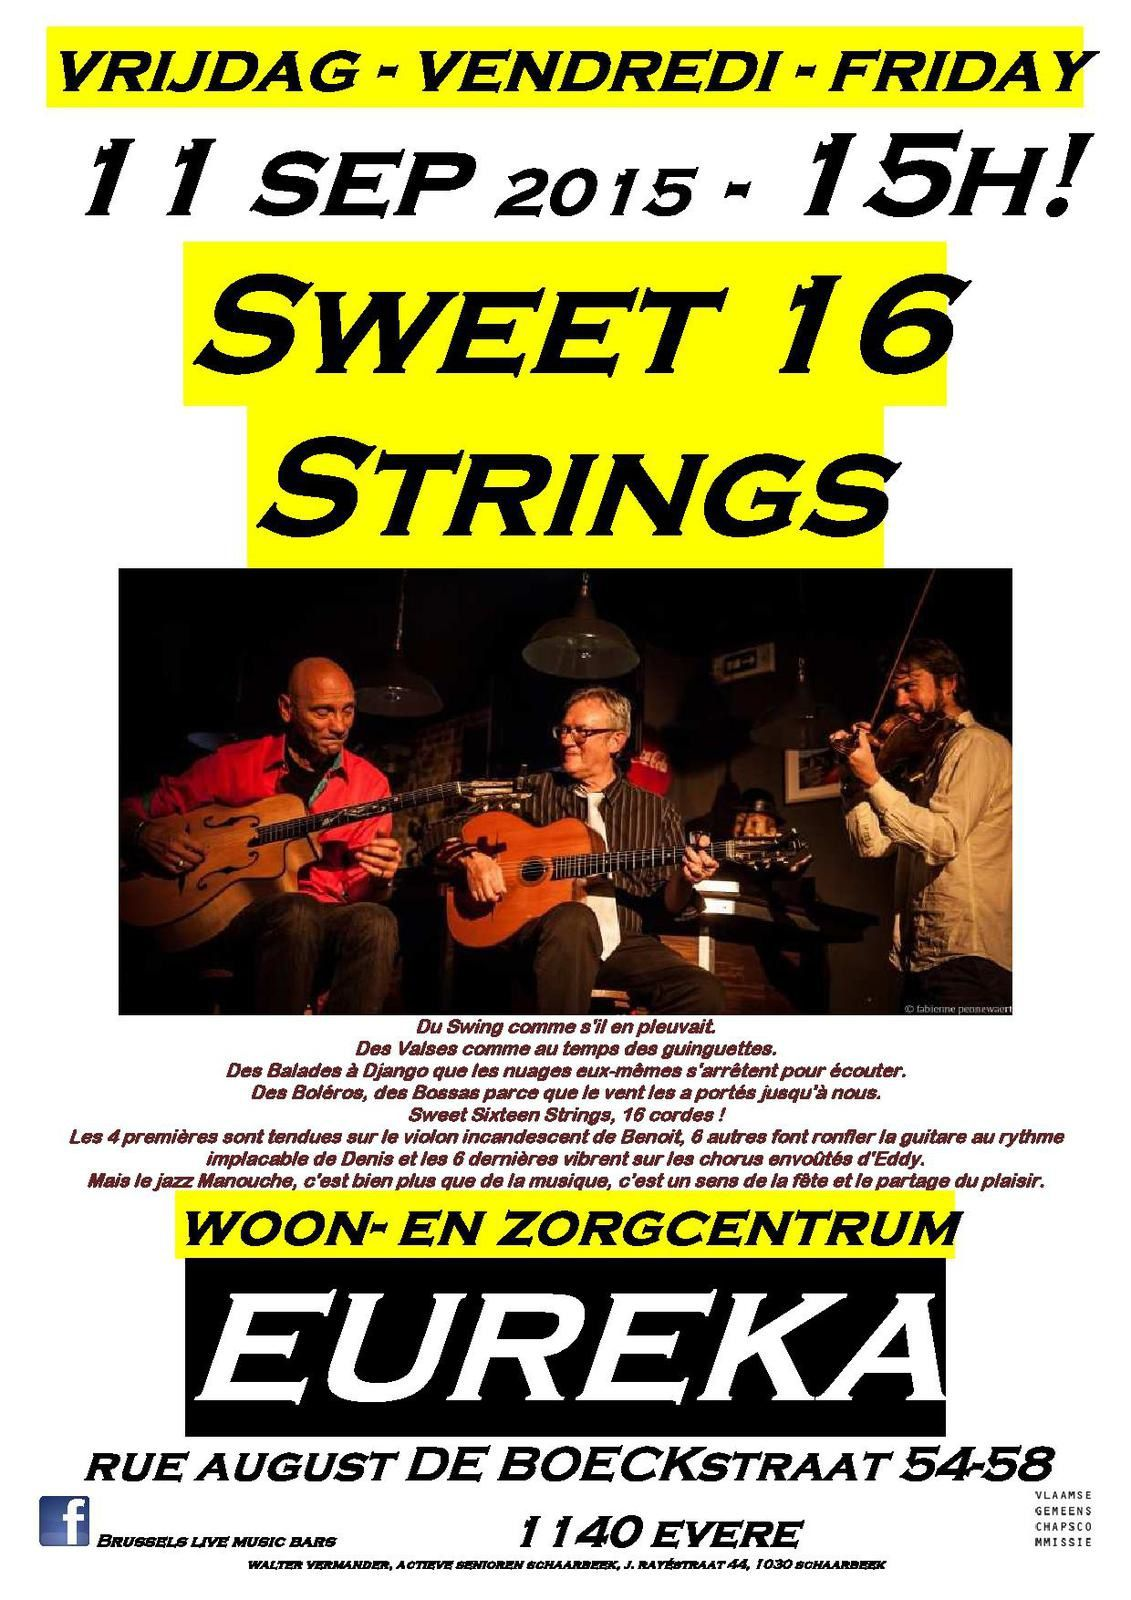 Sweet 16 Strings @ Eureka Woon- en Zorgcentrum - 11/09/2015